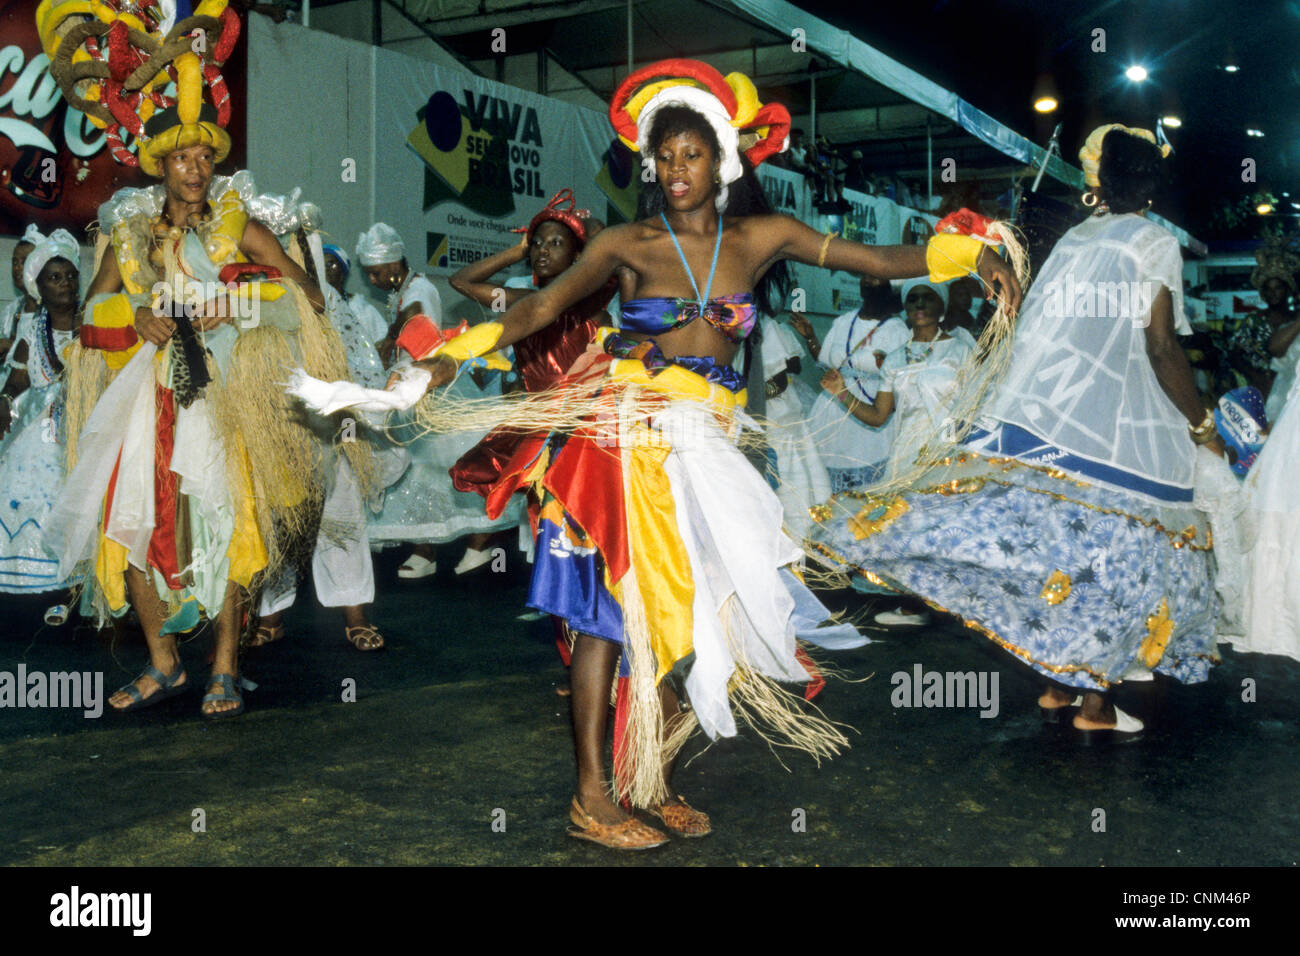 Dancers celebrate Carnival in allegoric and traditional